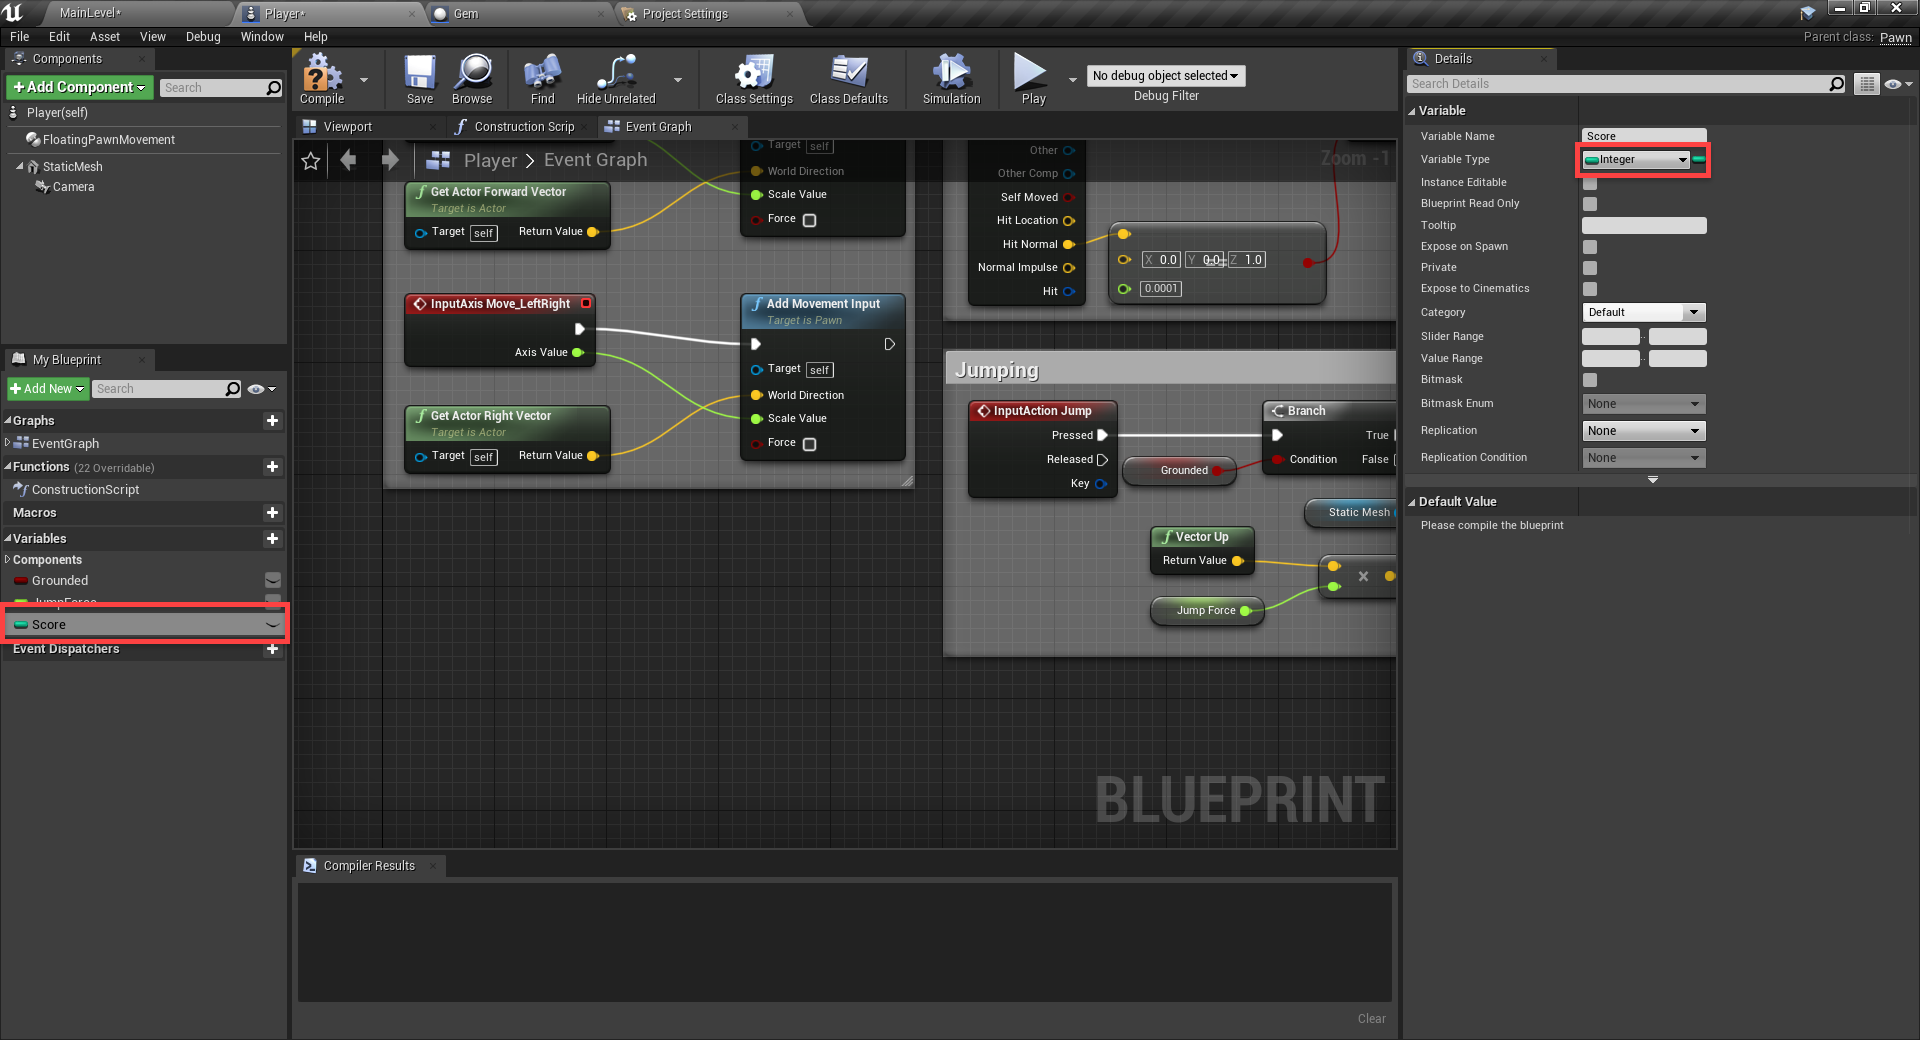 Unreal Engine Score with Integer selected for Variable Type